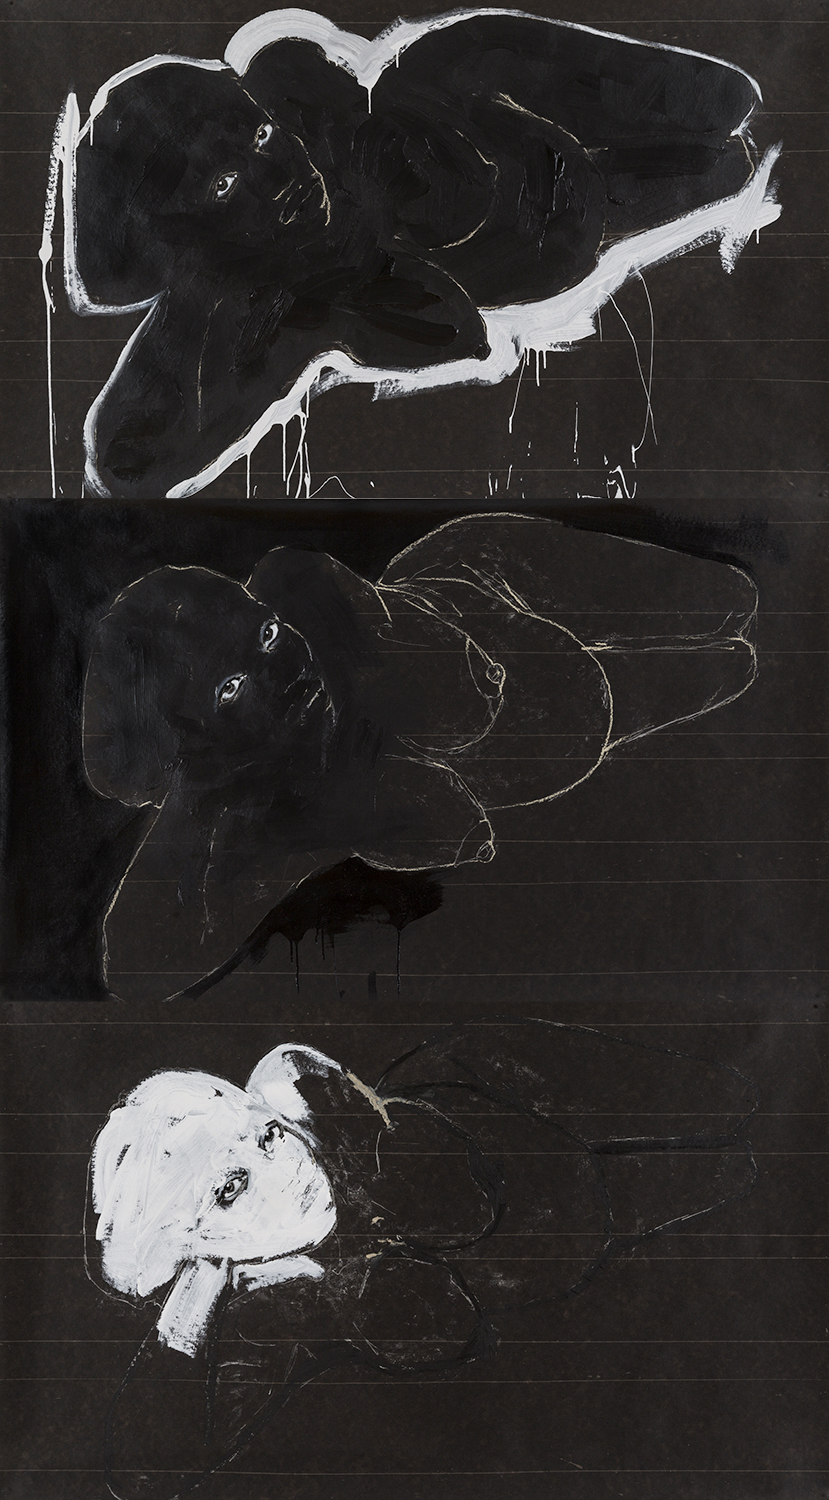 Pregnant Woman 3X, 108x60in, work on paper